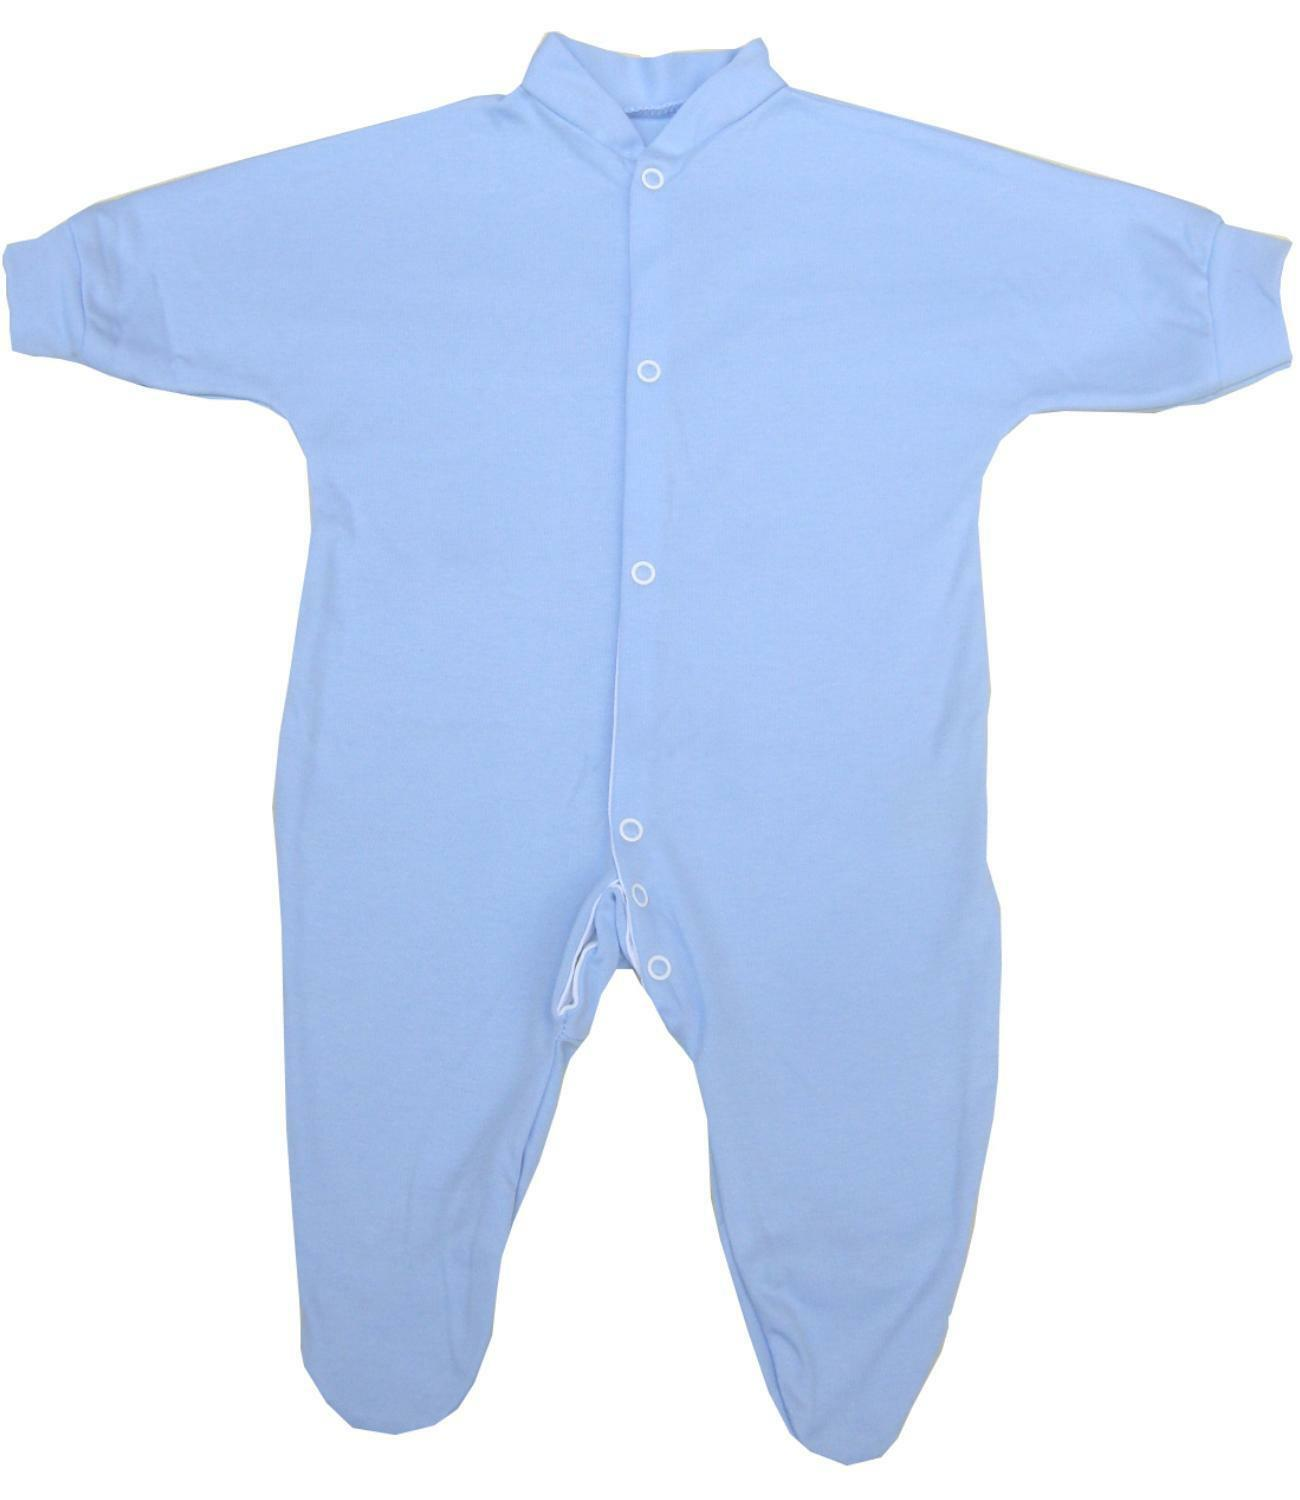 BabyPrem Baby Clothes Sleepers e pieces Footies Coveralls